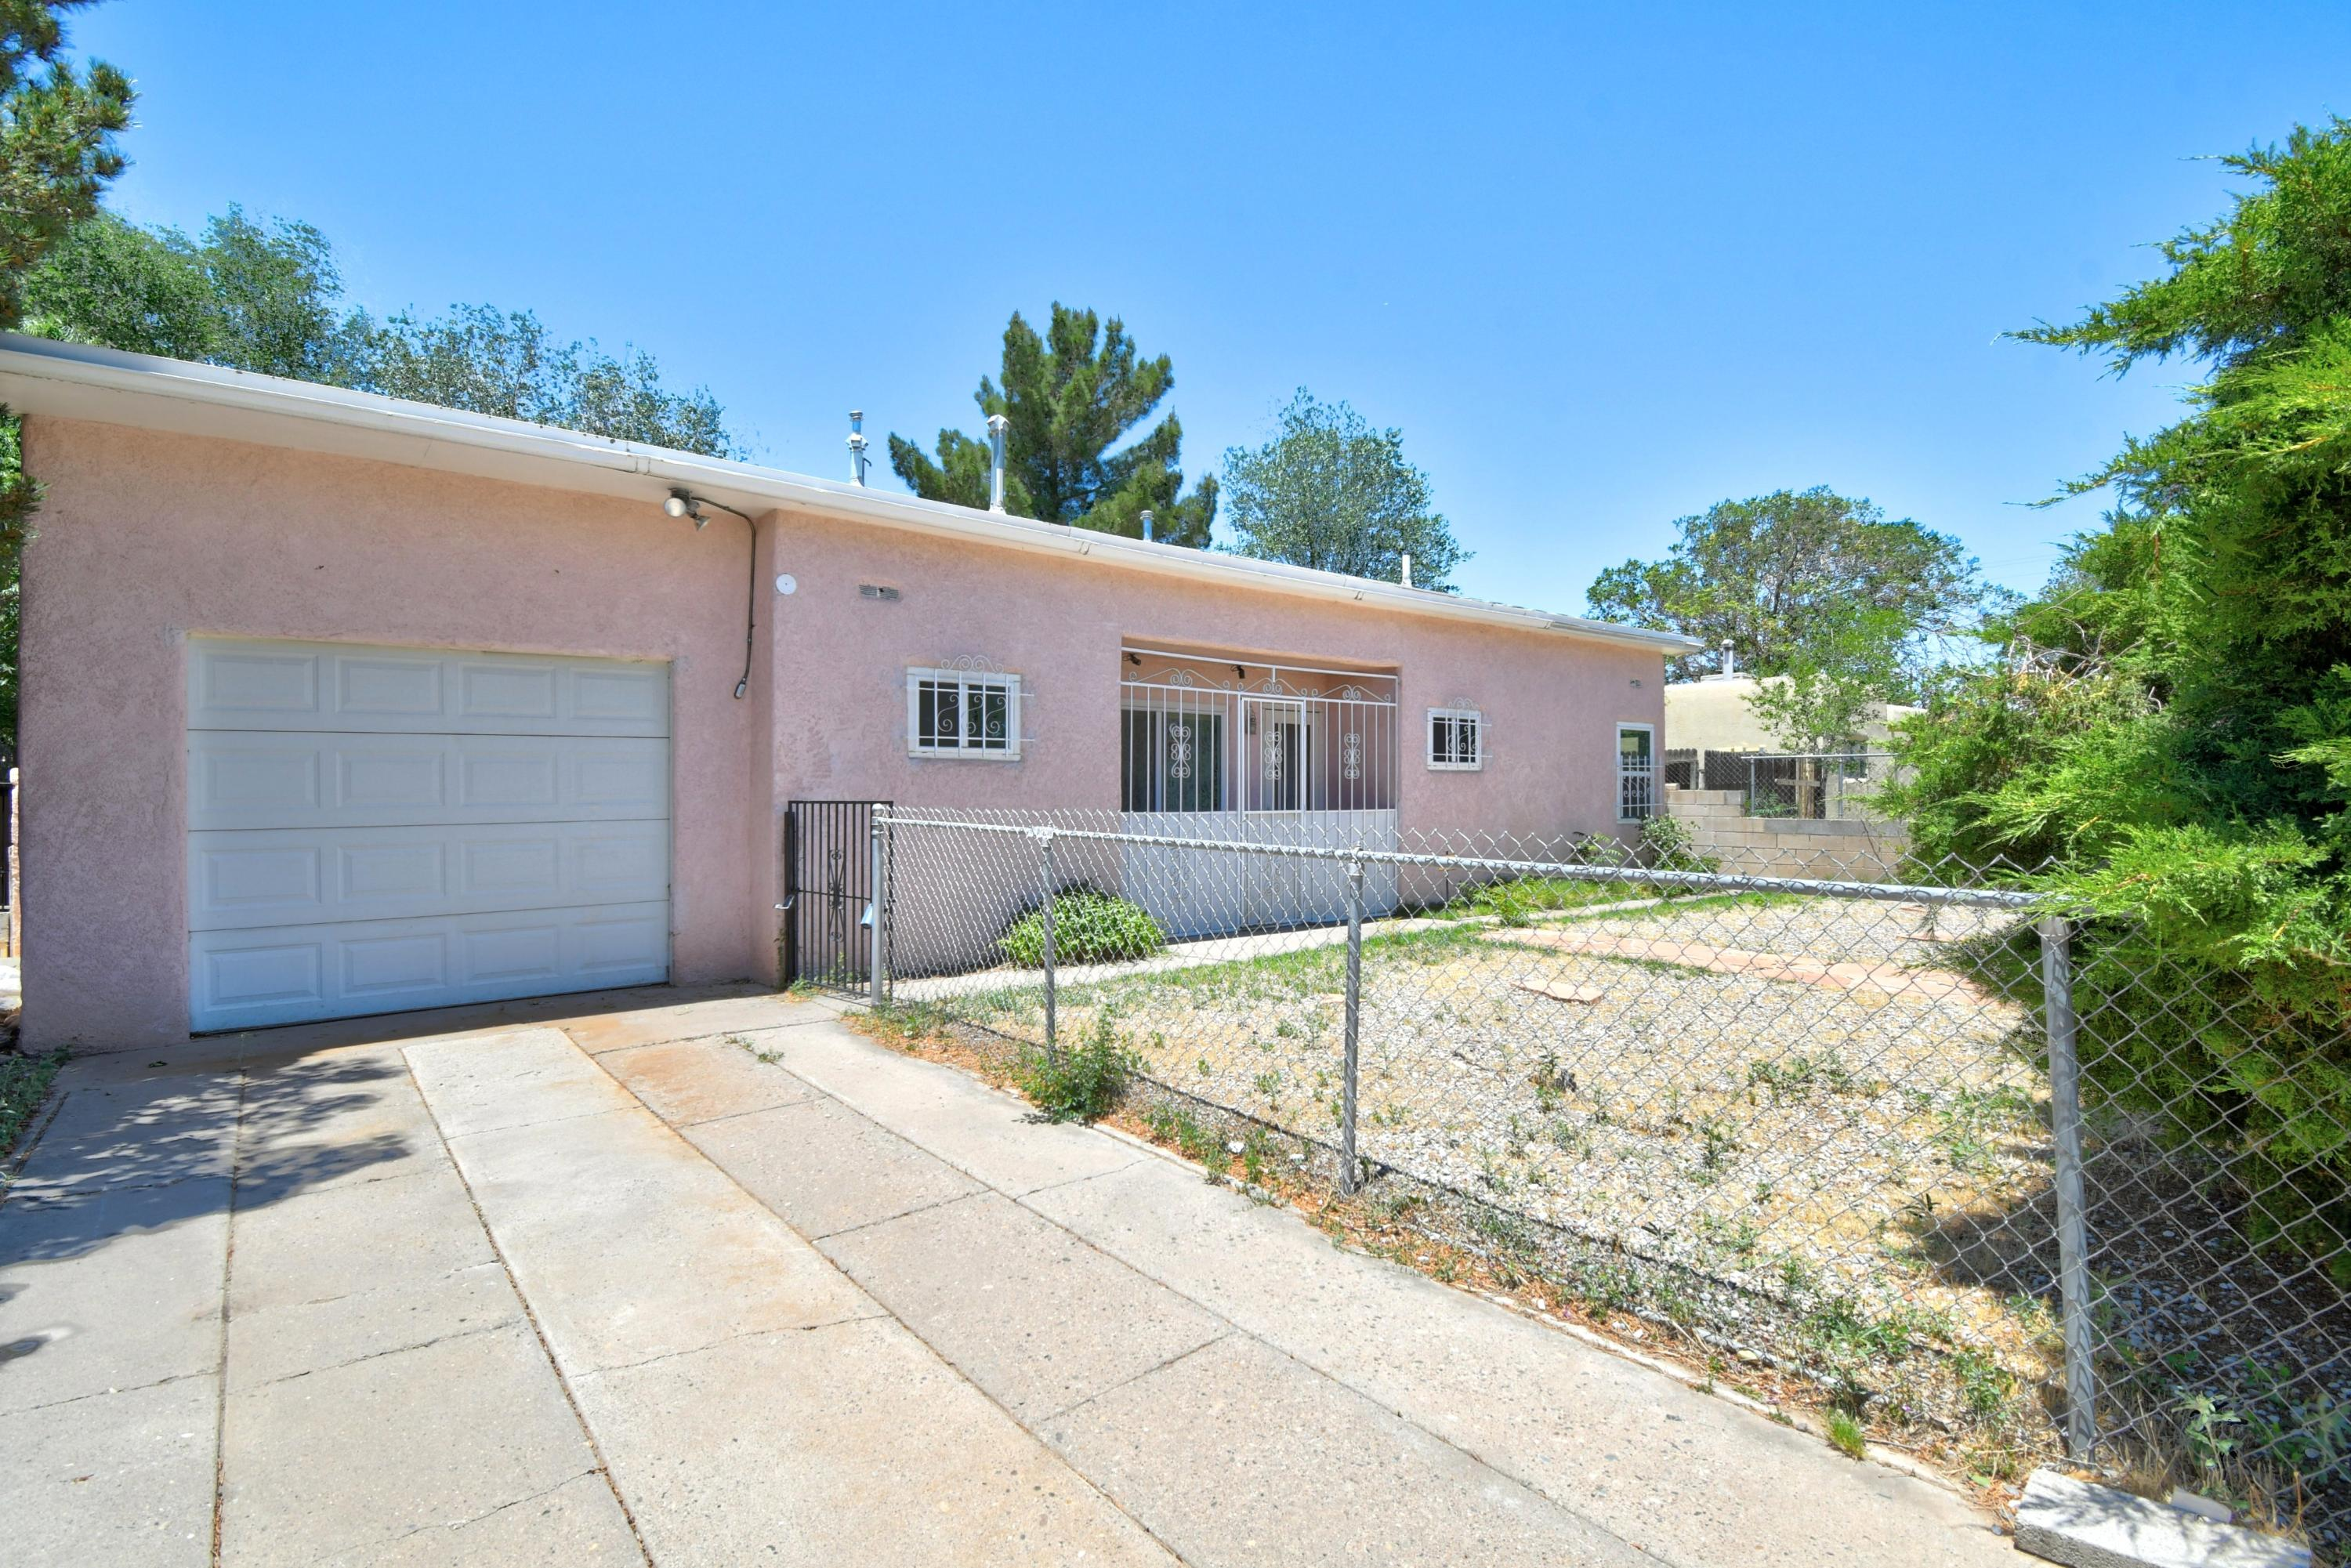 Here is your chance to own in the beautiful Bel Air Subdivision, an established, mature neighborhood. Situated on a large lot this home offers 3 bdrms, two living areas, and tons of potential.  Come see this one today and let your imagination go to work.